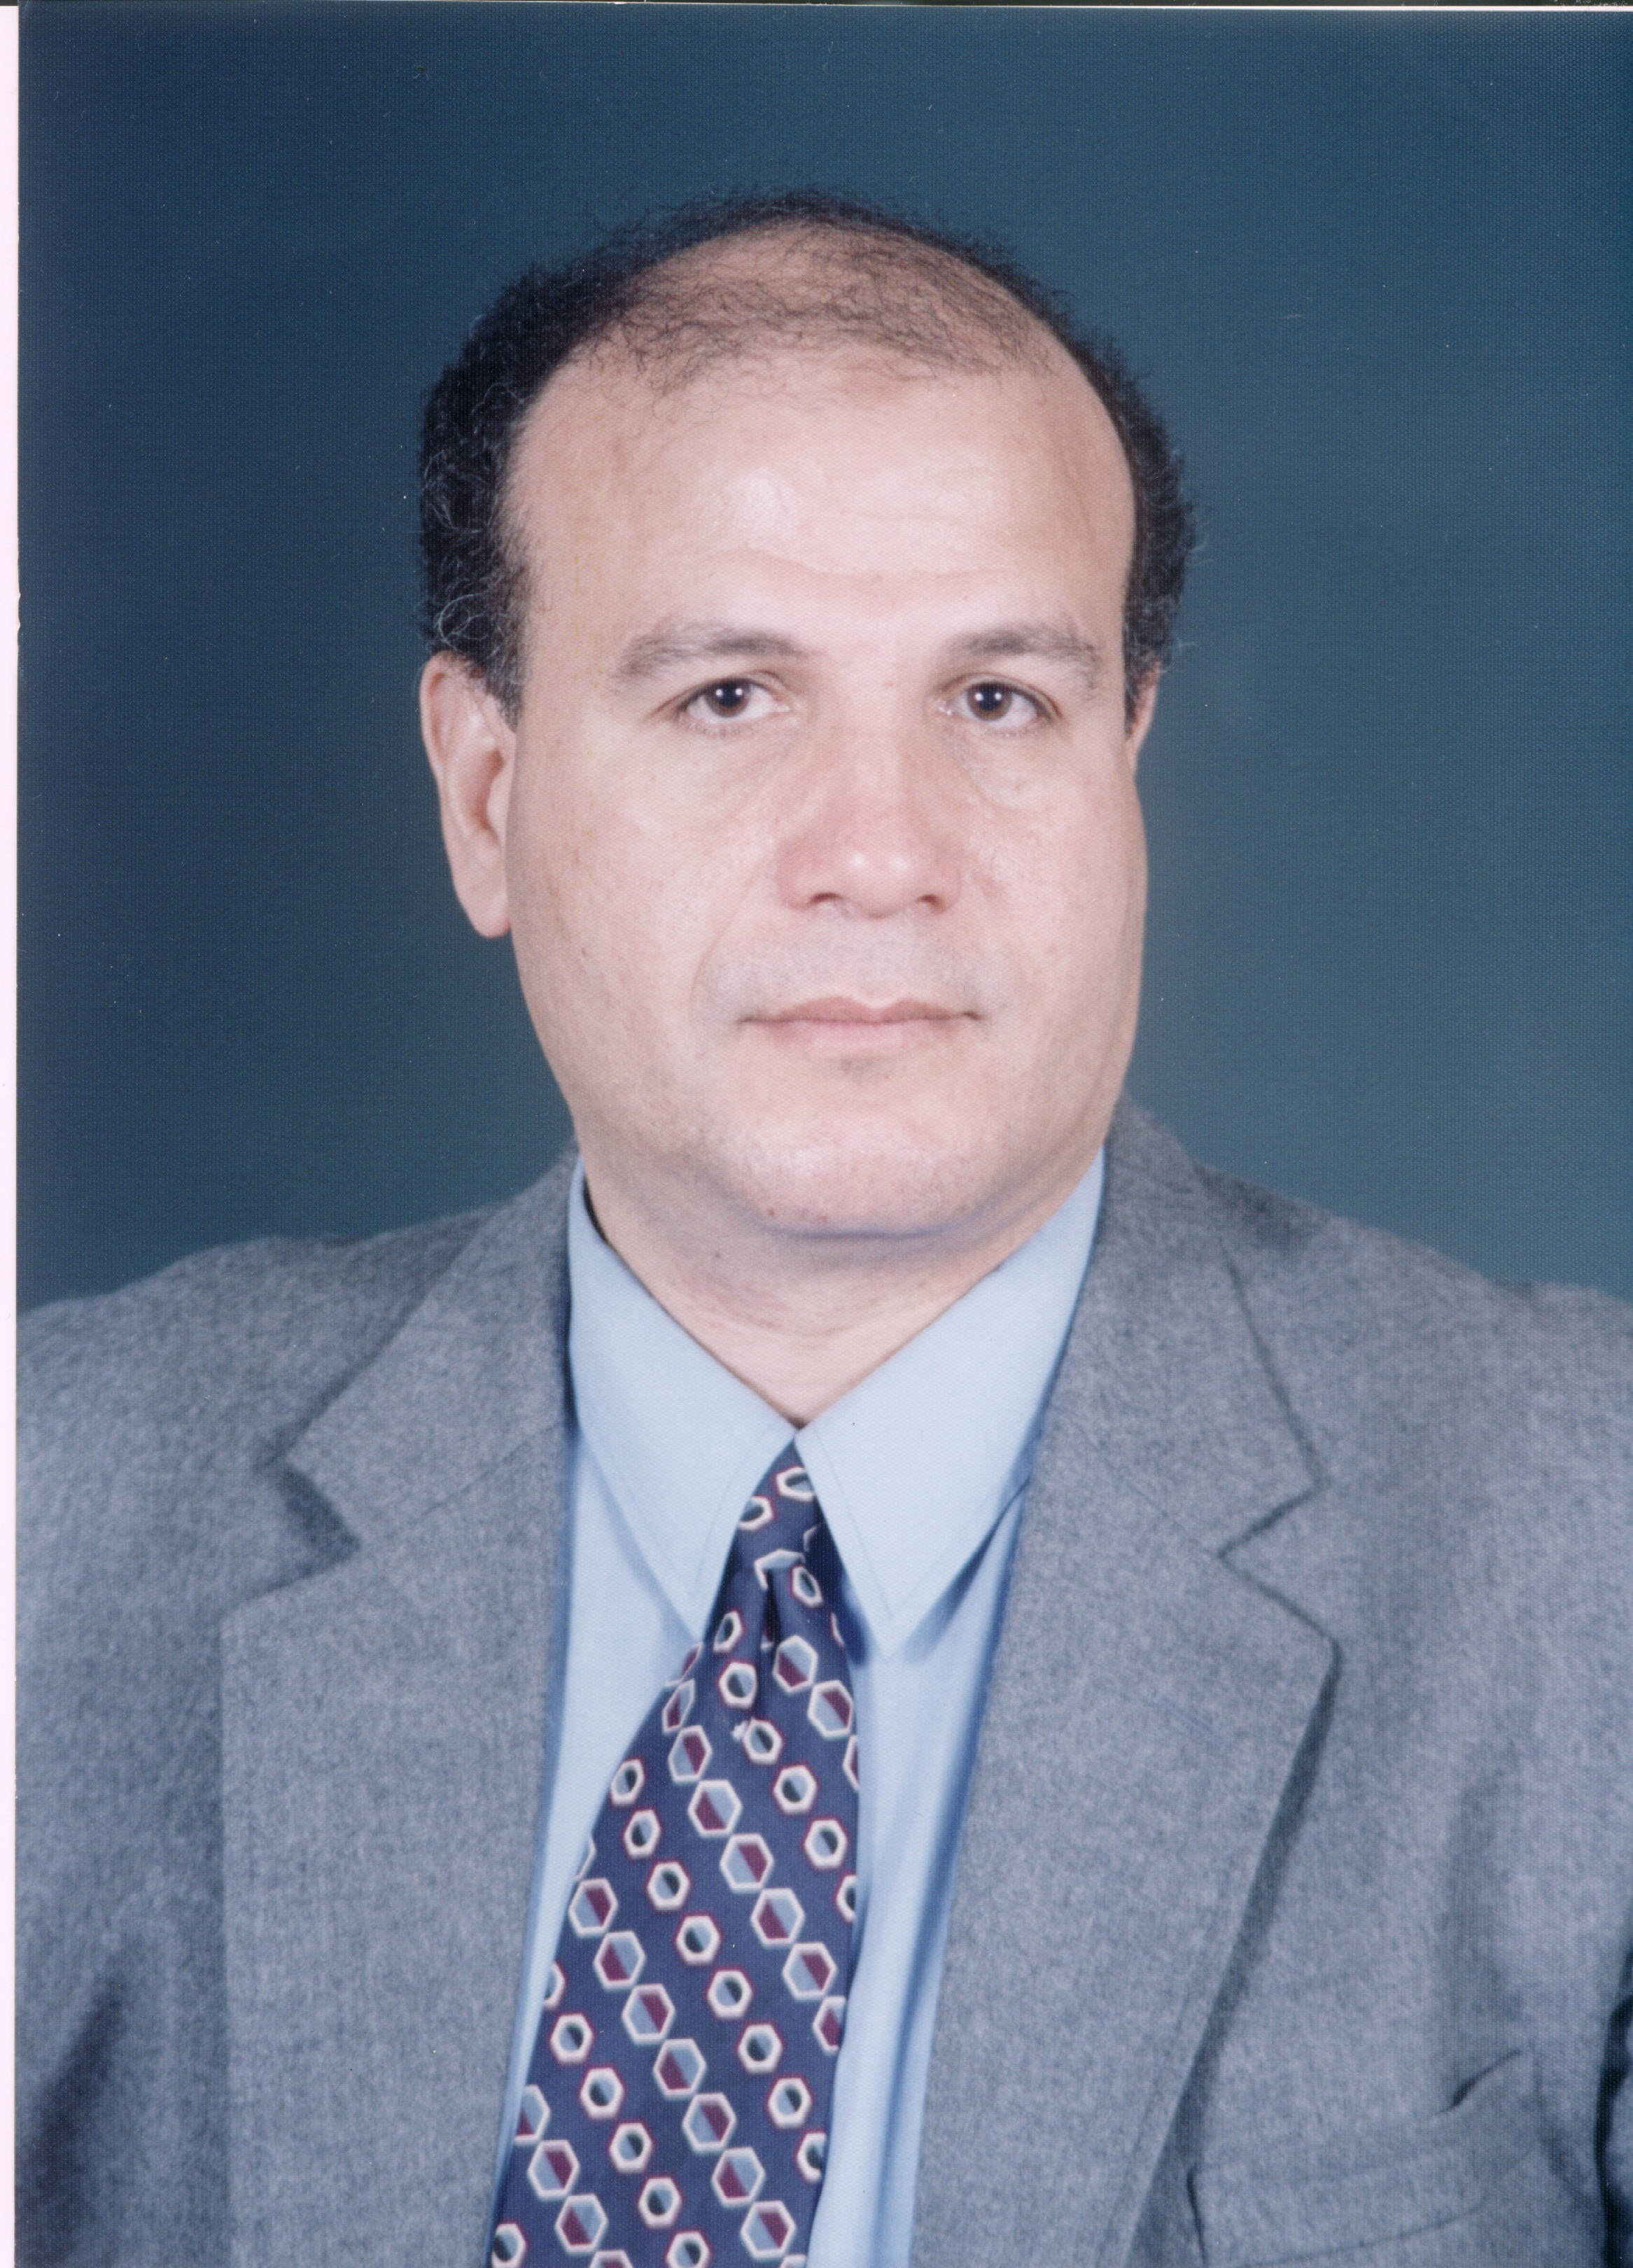 Ahmed Abdel Fattah Mahmoud Ahmed